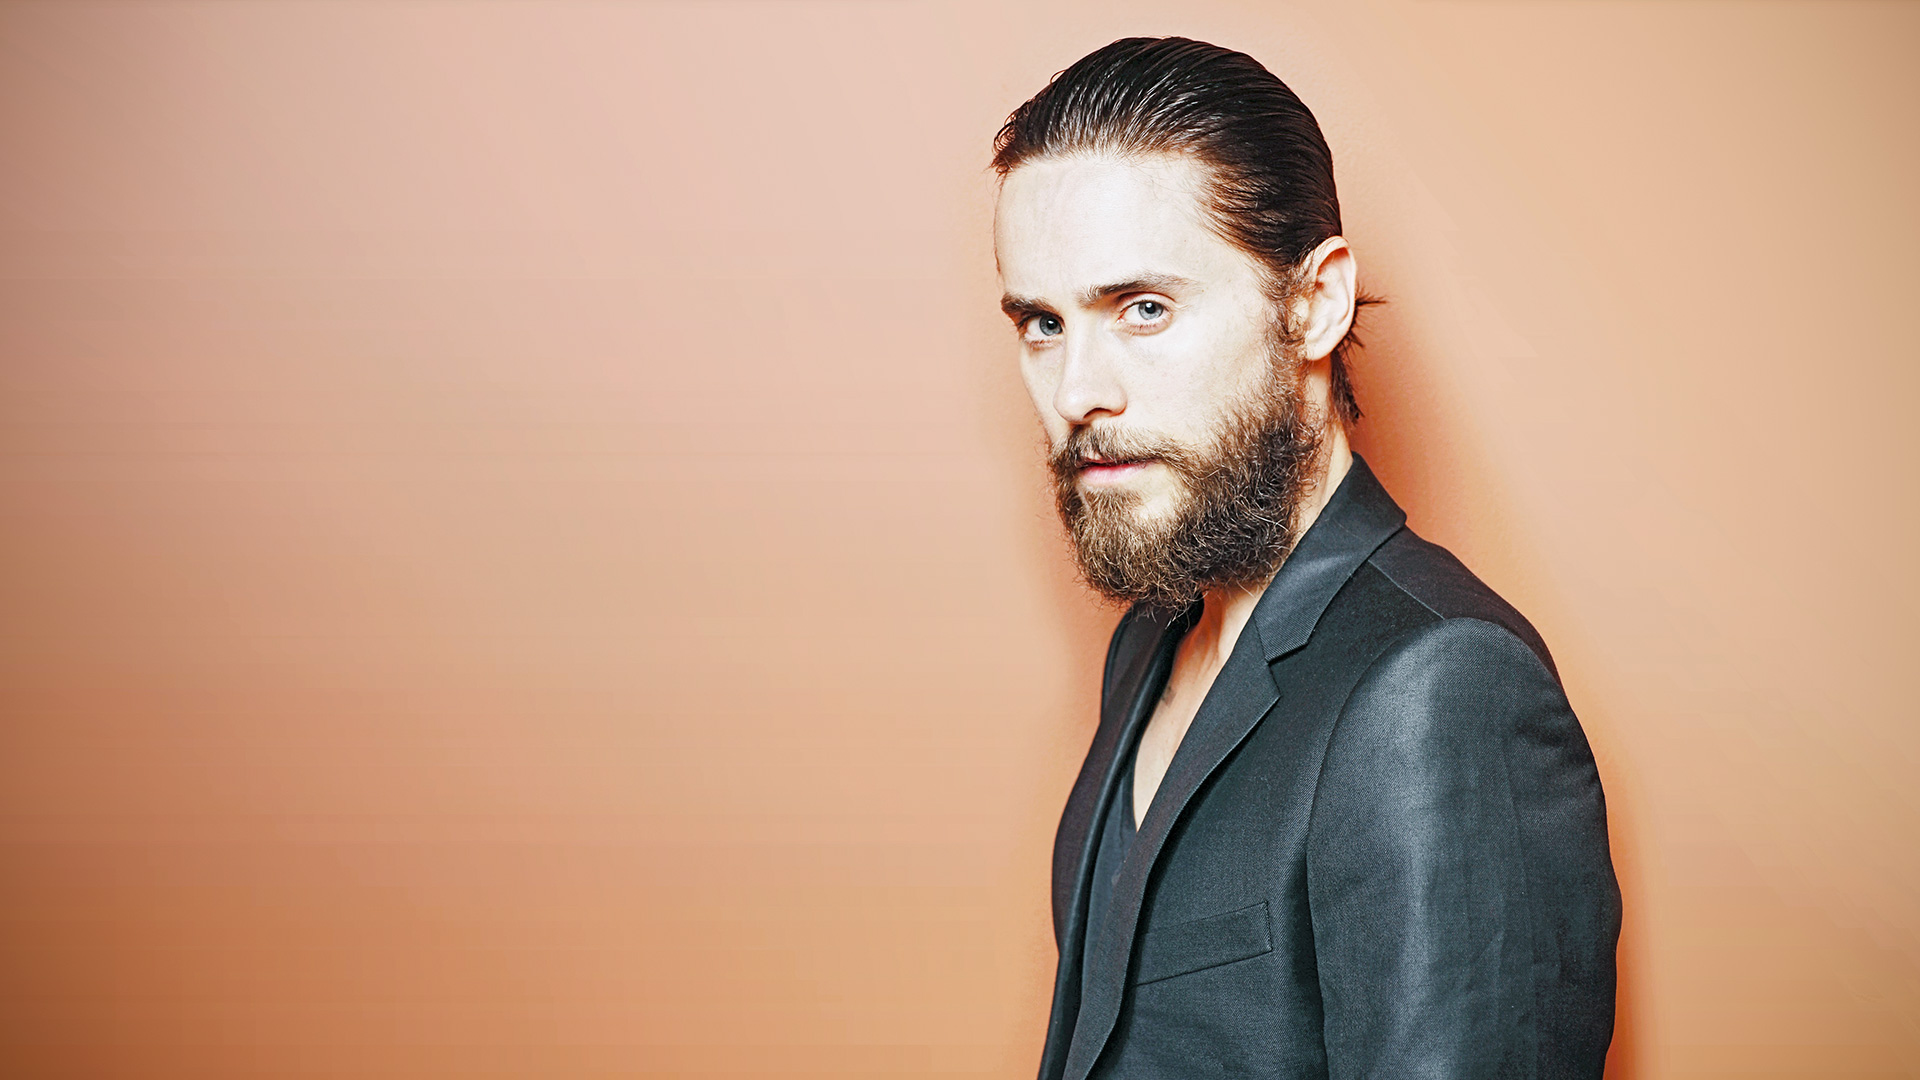 Jared Leto On Creativity, Commerce, And Lessons From Surviving A $30 Million Lawsuit | Fast Company | Business + Innovation